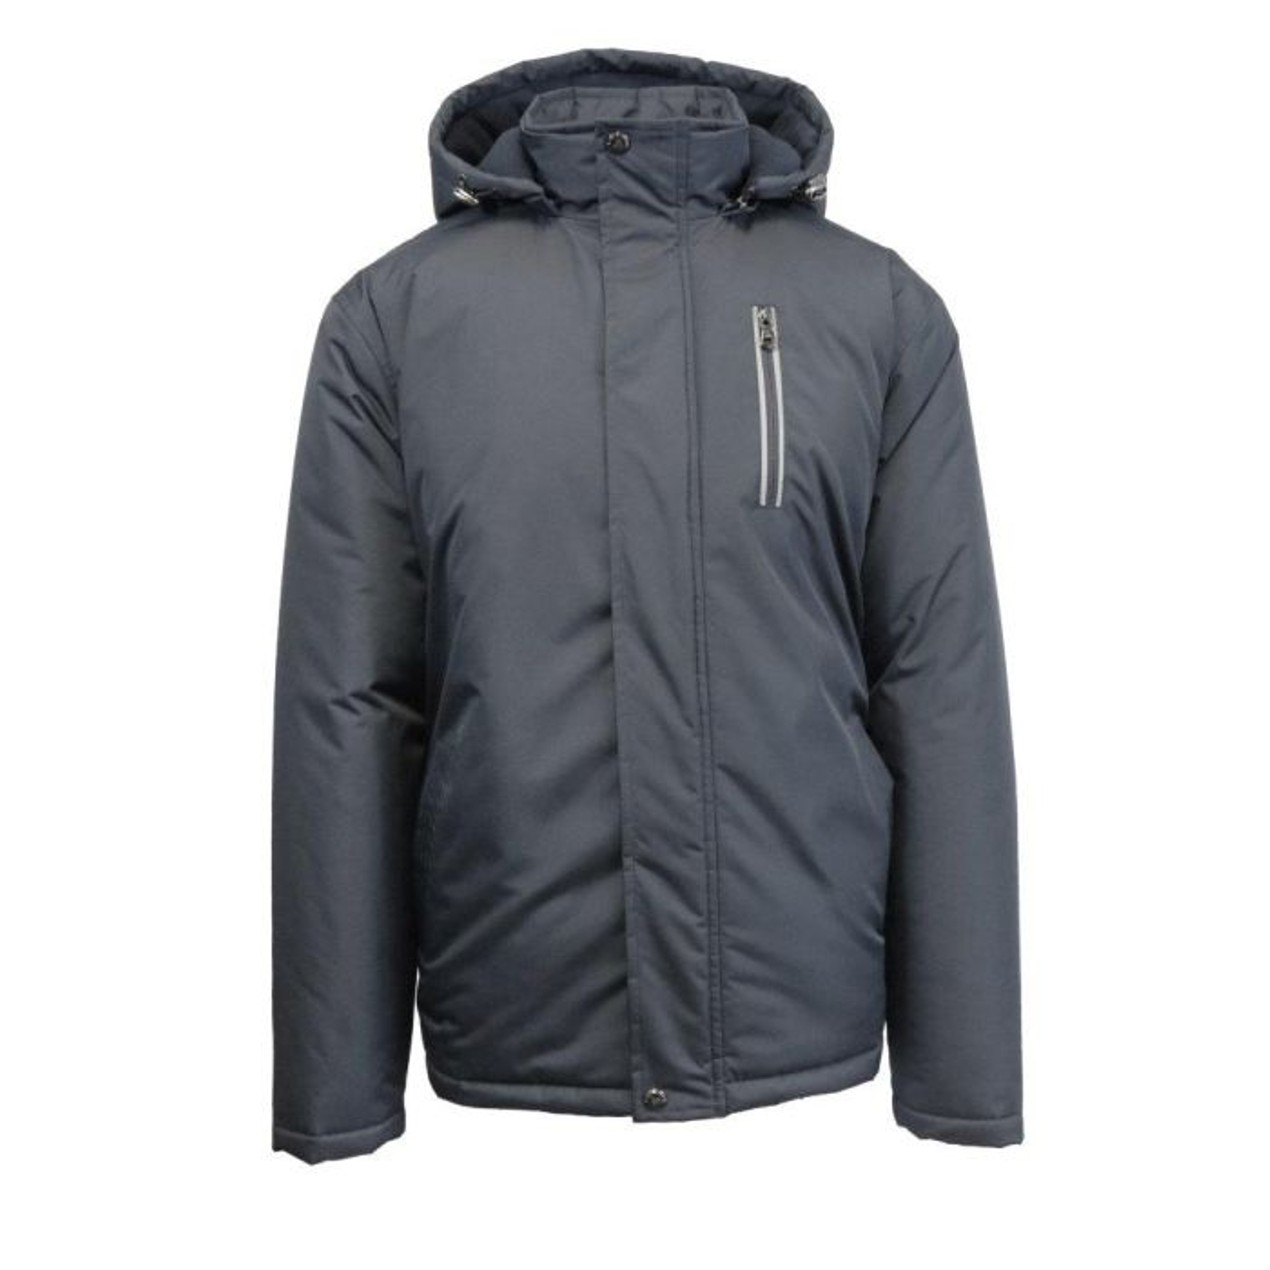 249b38e9516 Spire By Galaxy Men's Heavyweight Jacket With Detachable Hood - Tanga